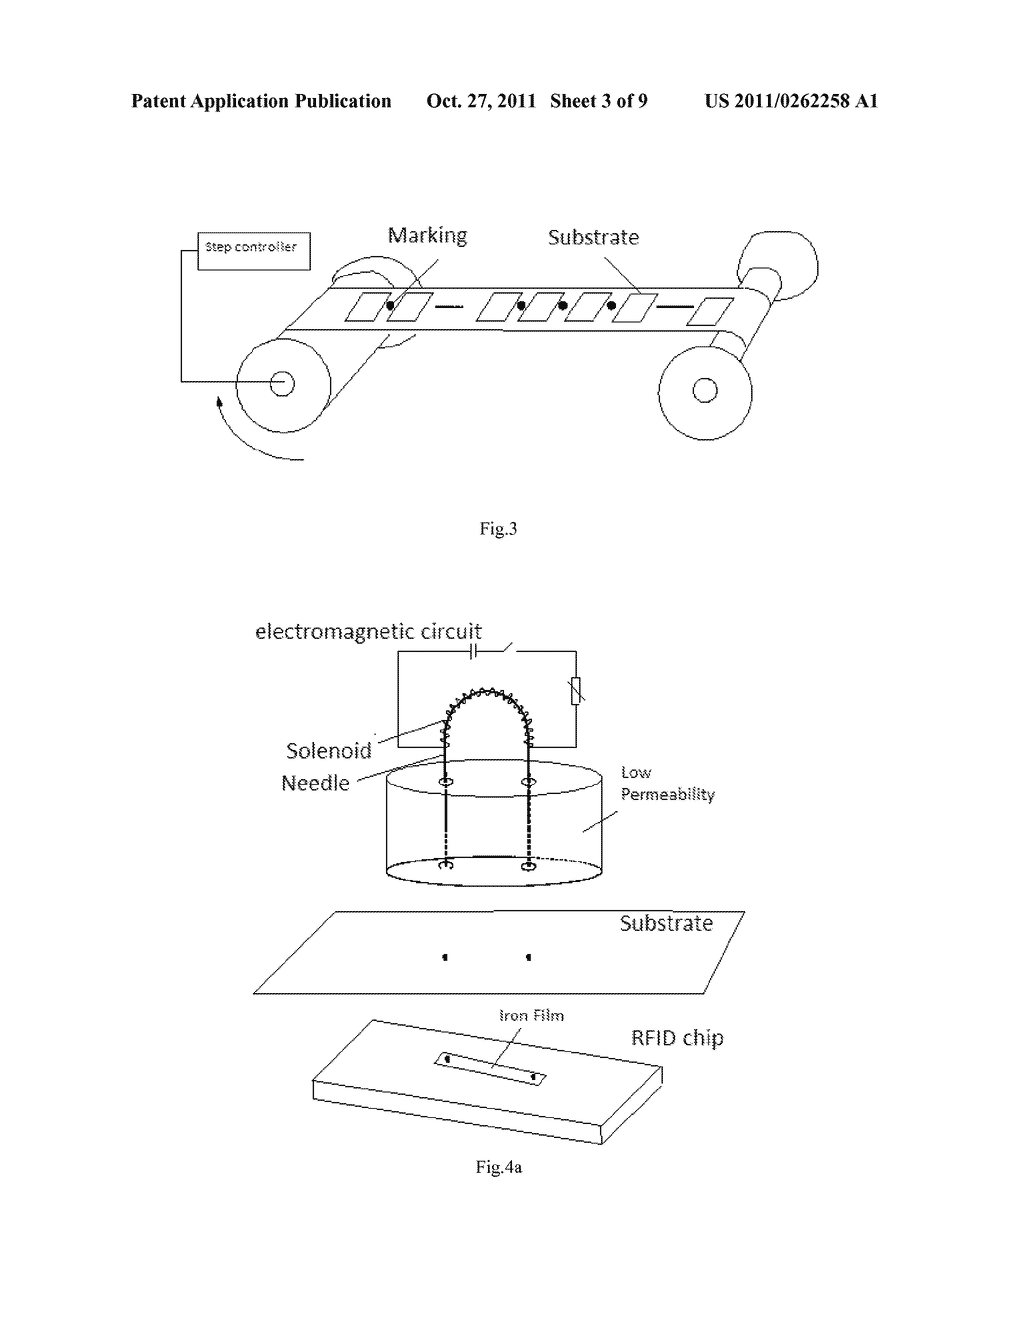 Rfid Chip Circuit Diagram Electrical Wiring Diagrams Small Packaging Fixture And Method Of Using Magnetic Field Finger Scanning Schematic